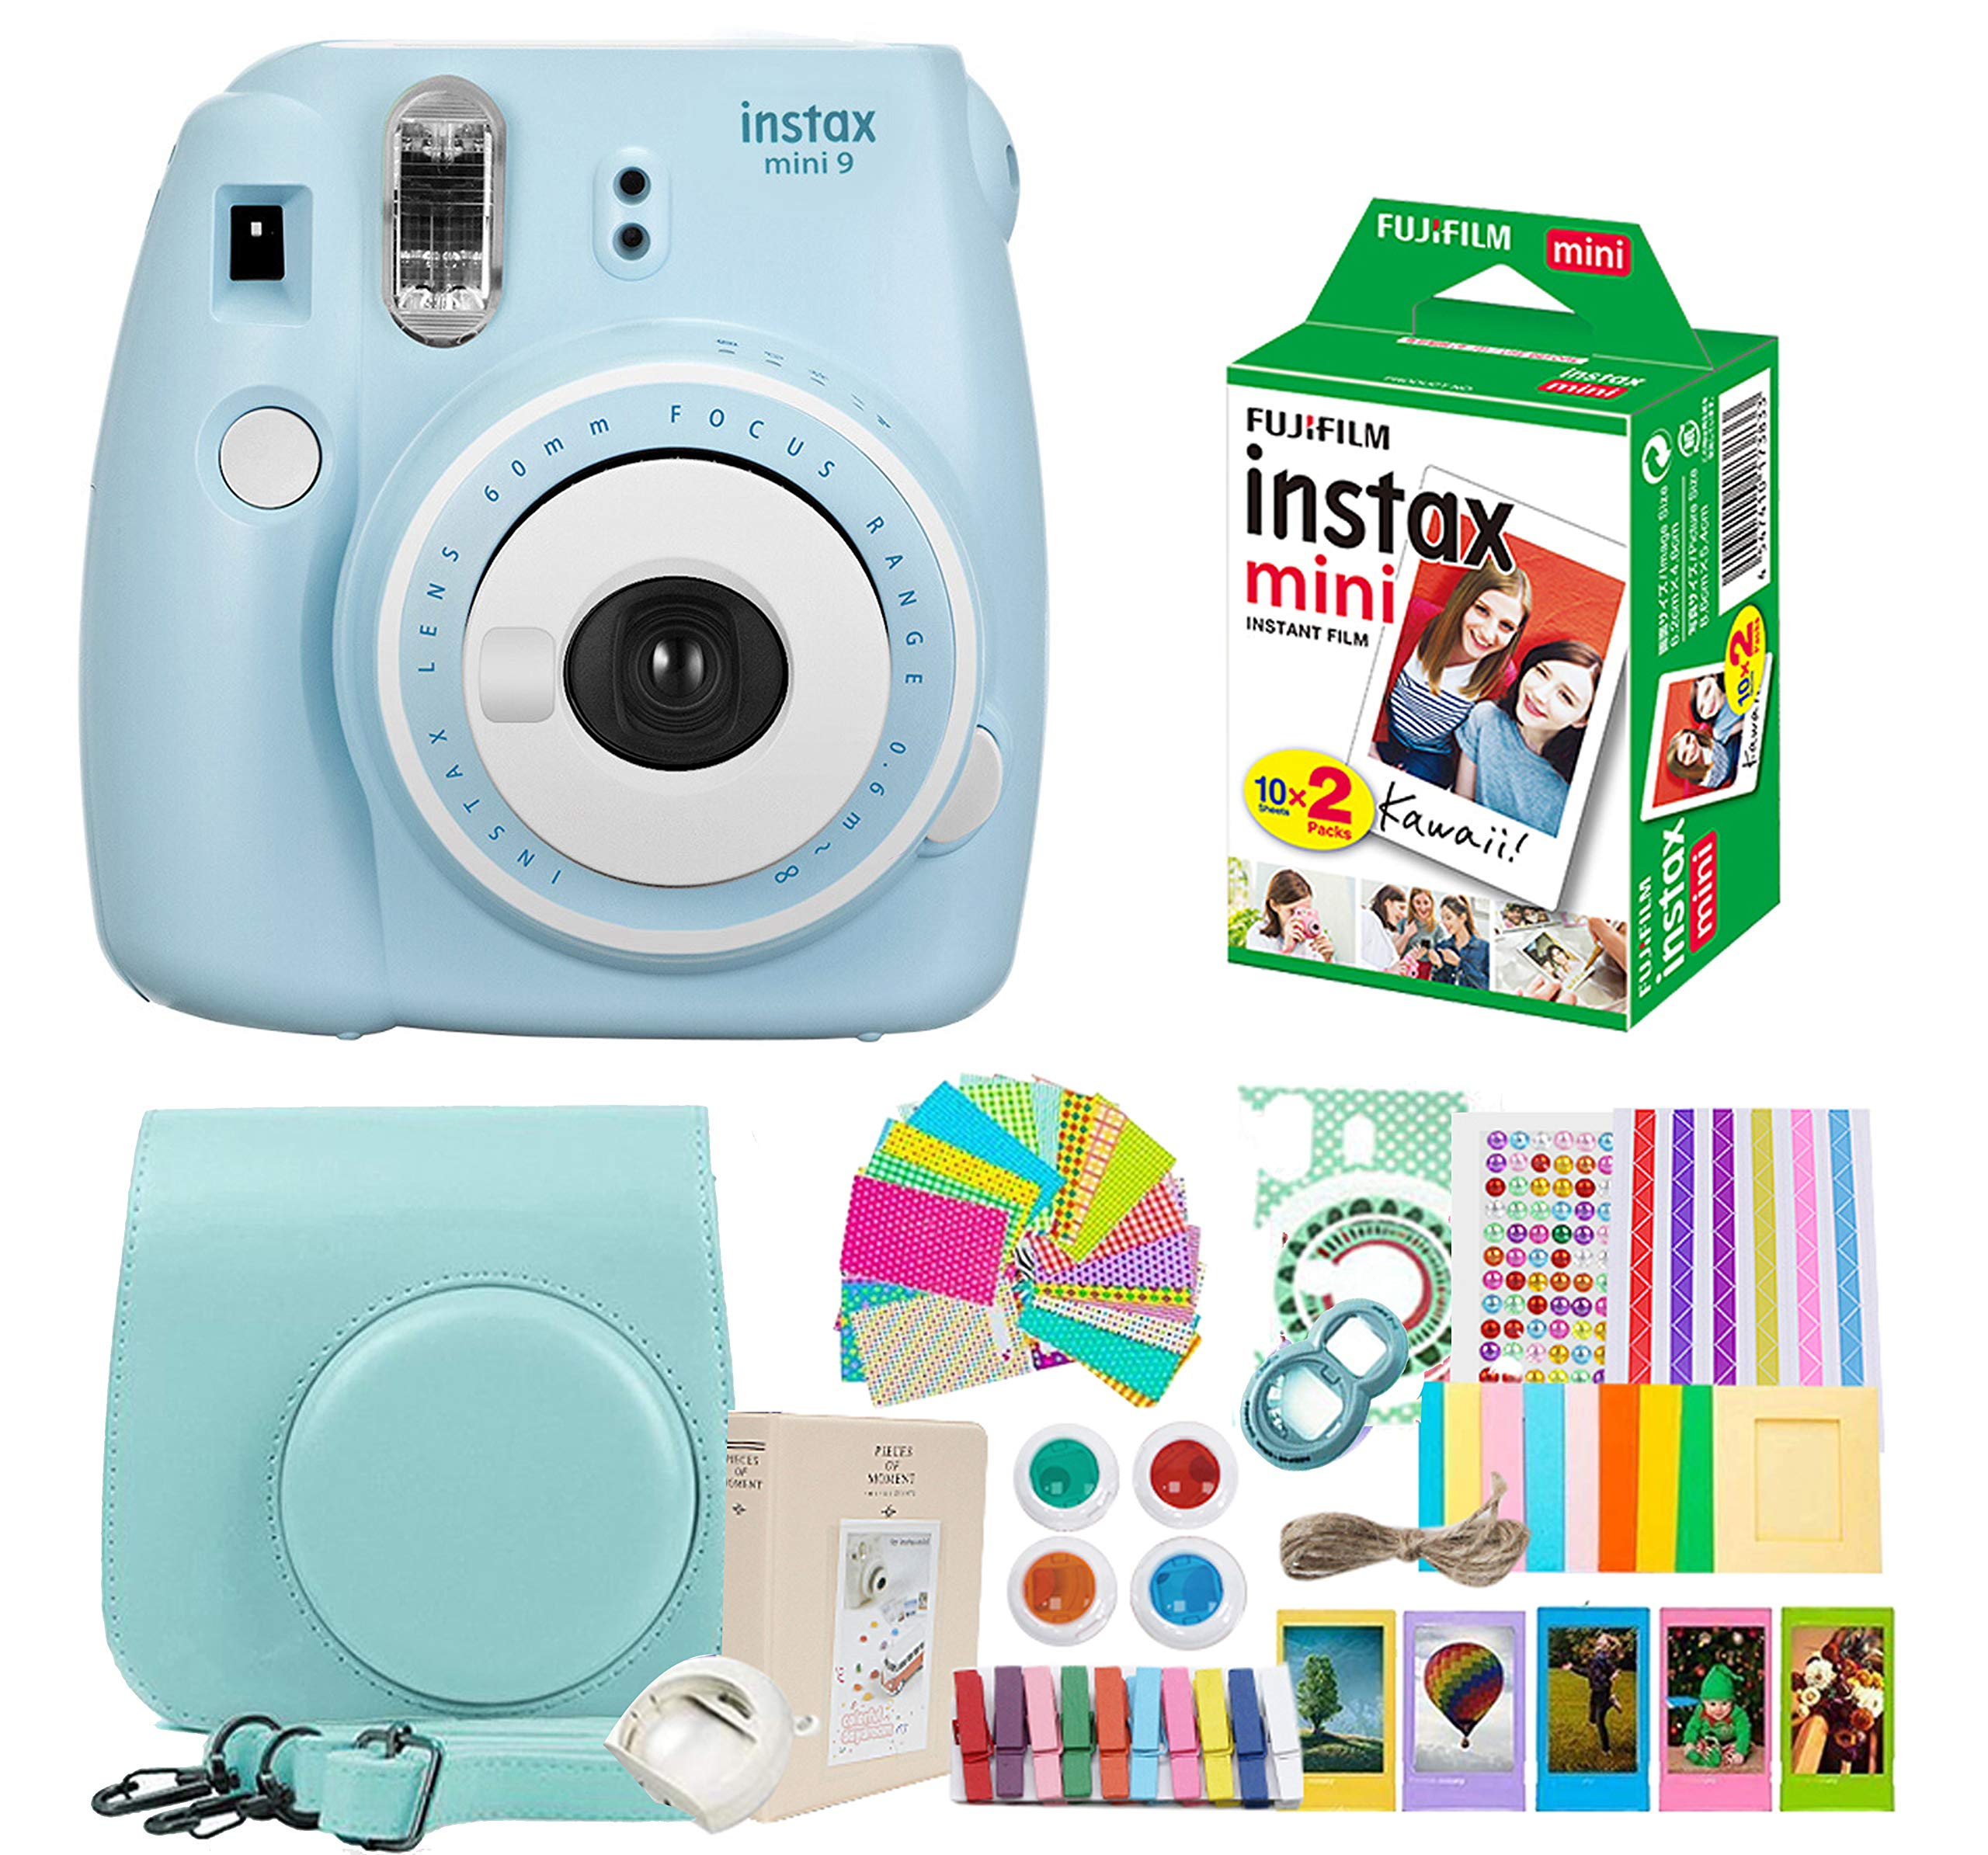 Fujifilm Instax Mini 9 Camera + Fuji Instax Mini Film + Instax Mini 9 Case + Instax Accessories Kit Bundle, Instant Camera Gift Sets - Ice Blue by Nishow